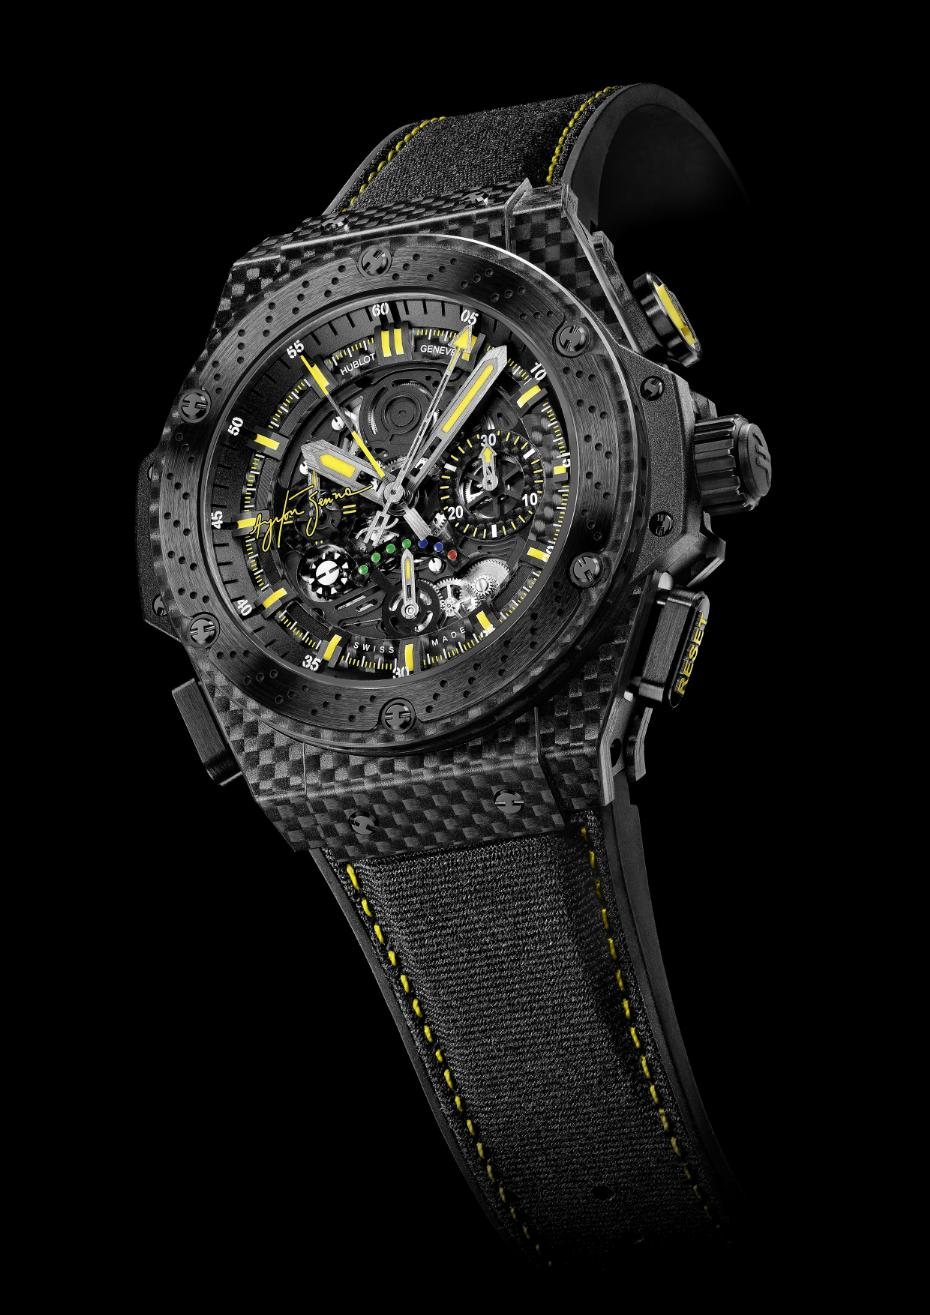 Hublot King Power Ayrton Senna Limited Edition